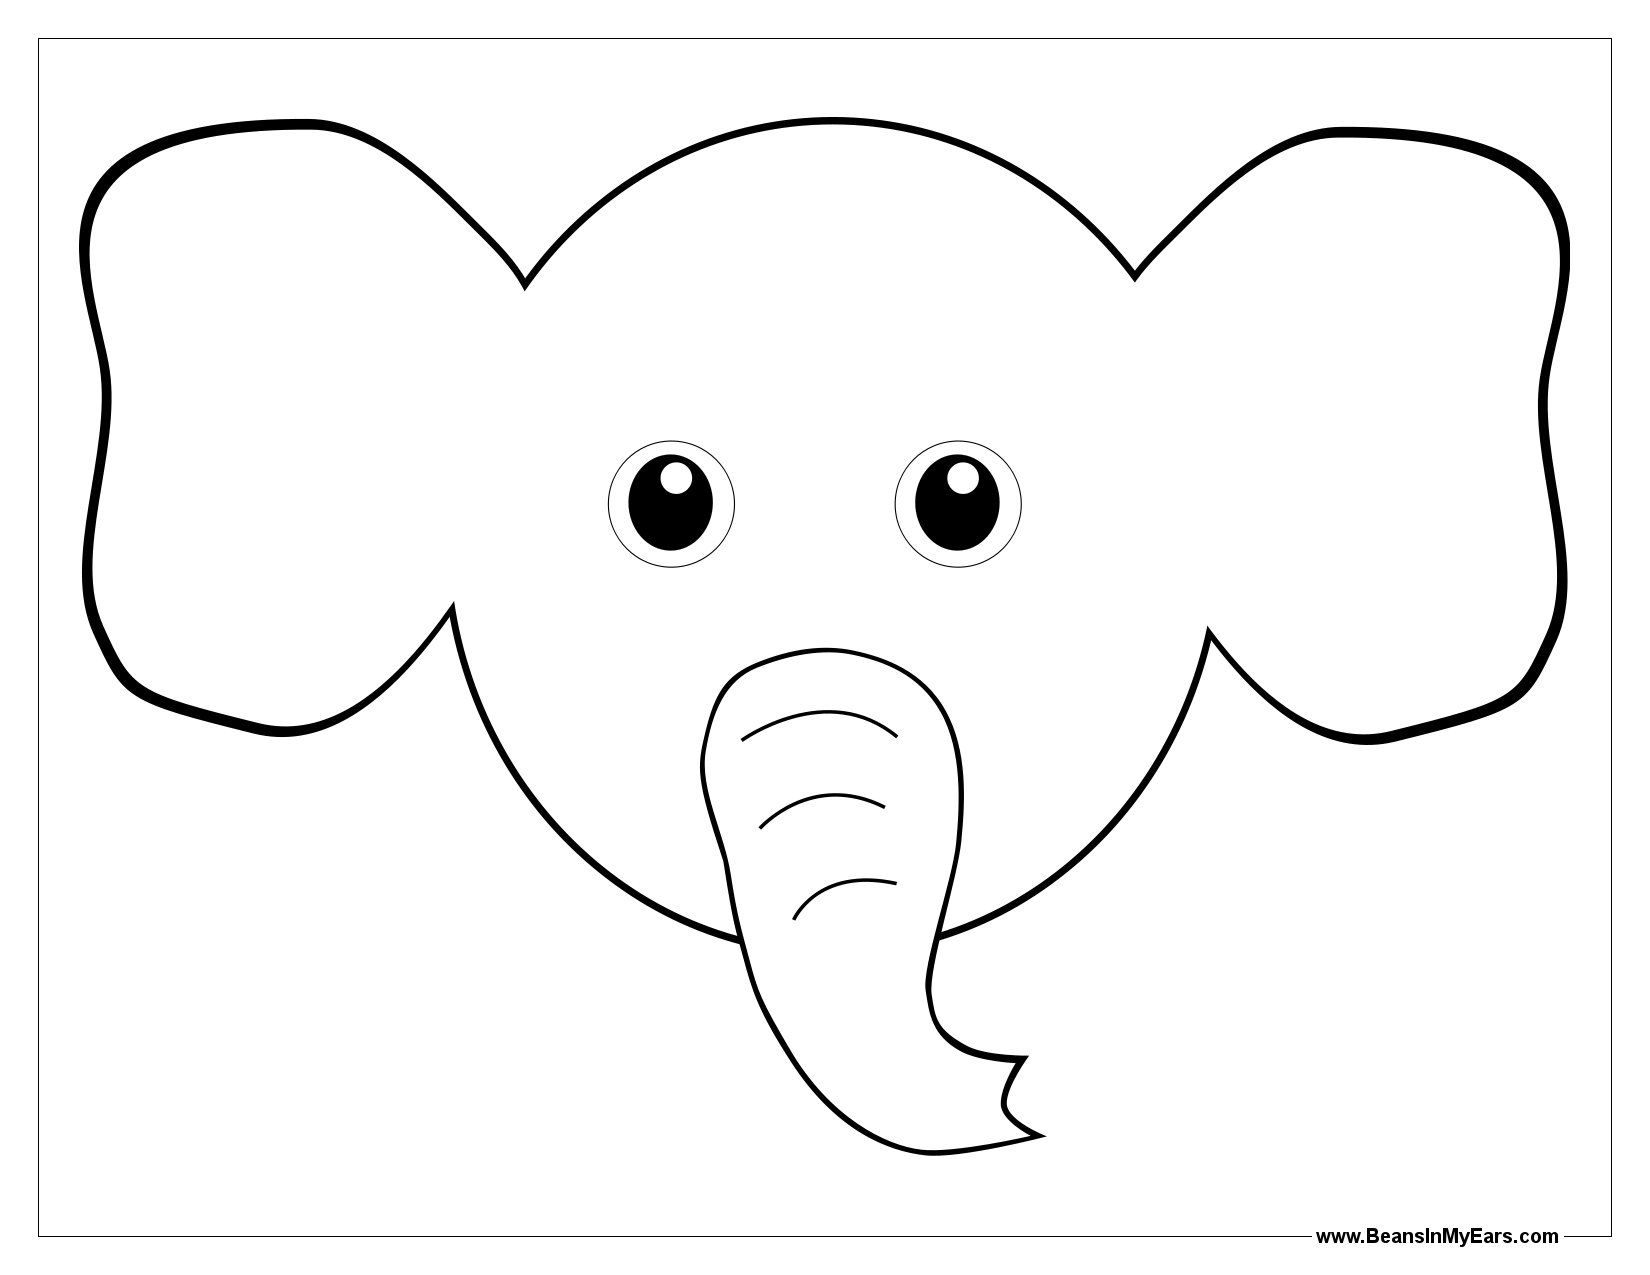 elephant images for colouring ears coloring pages coloring home elephant for images colouring